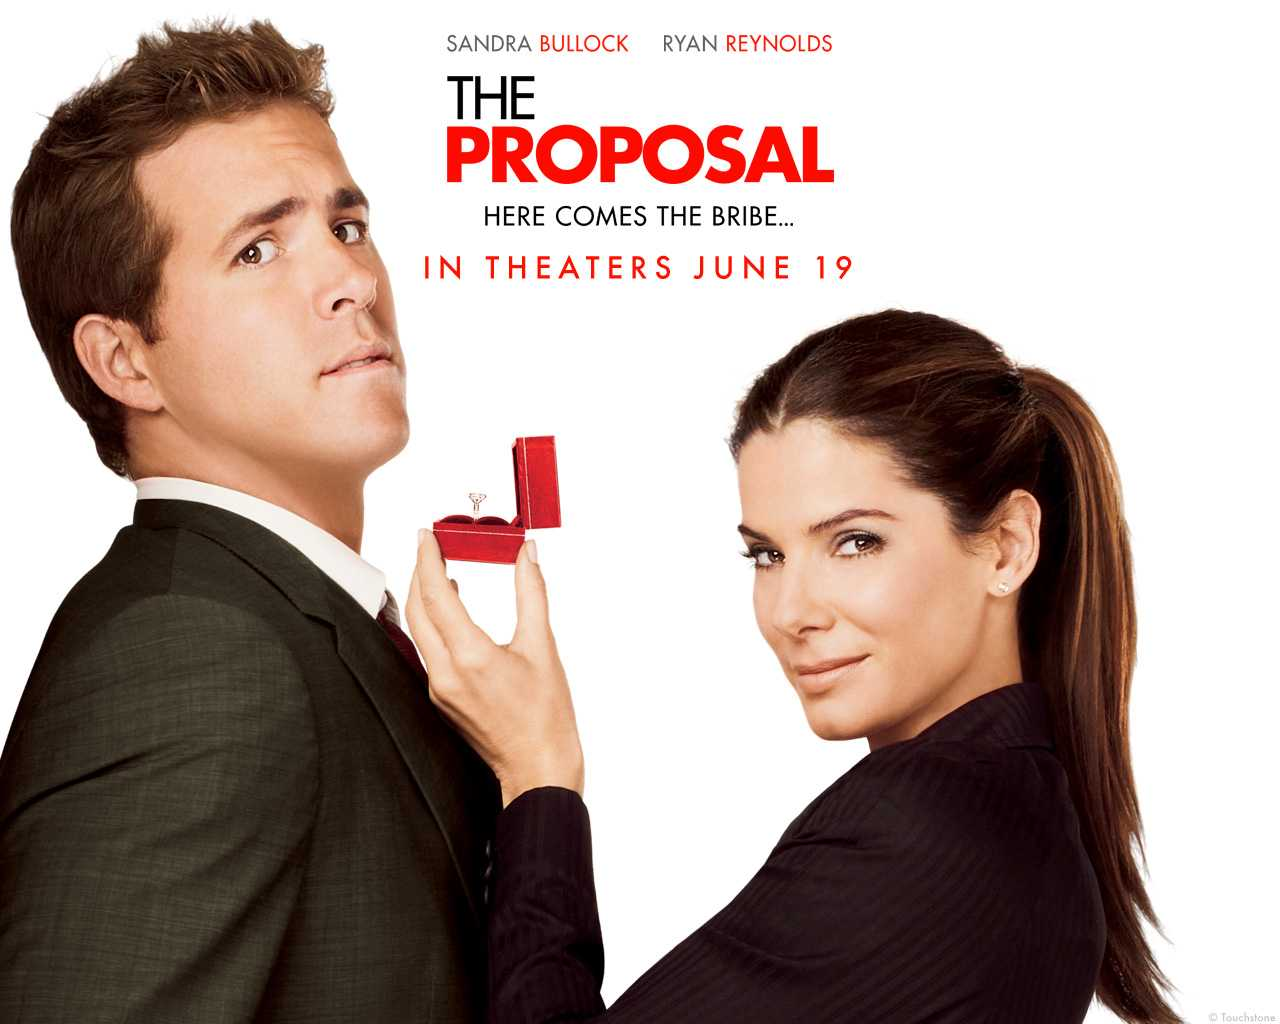 http://1.bp.blogspot.com/-o3AQLSTw4RE/ThaFm_p1c7I/AAAAAAAAAII/O0VDCjuPs94/s1600/2009_the_proposal_wallpaper_002.jpg